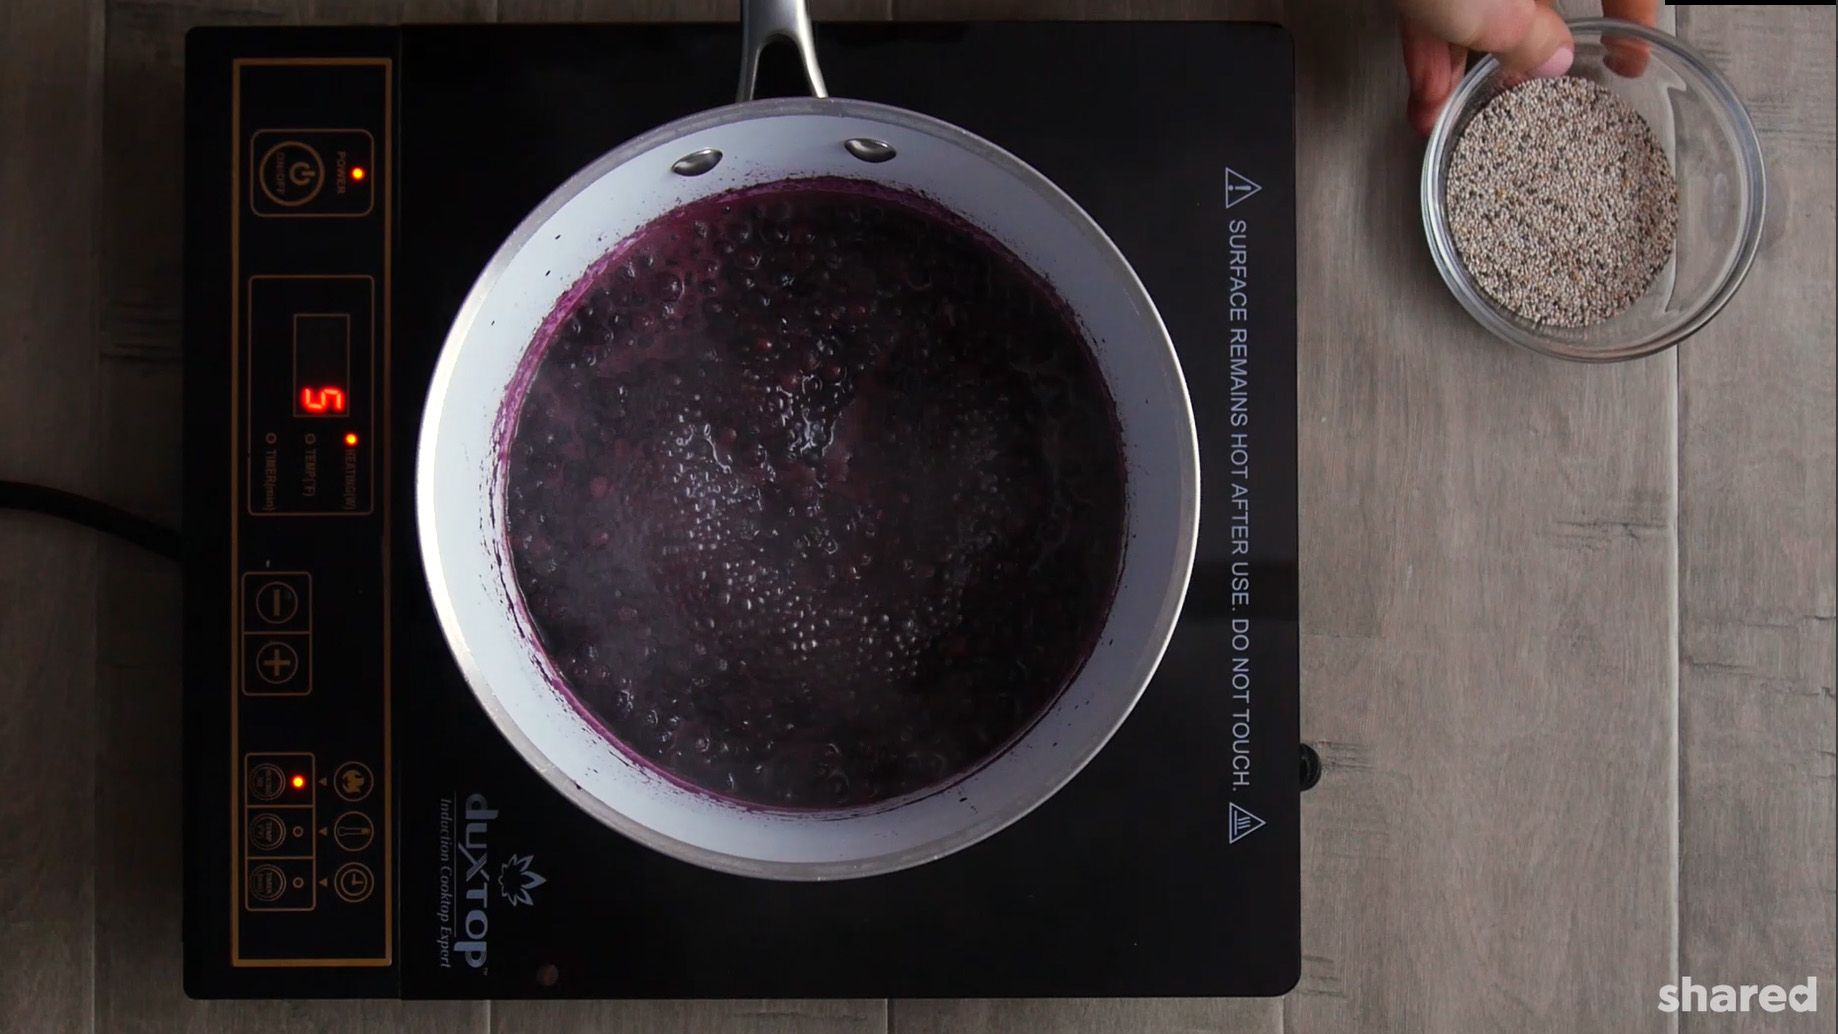 blueberry chia jam in a white saucepan simmering on a stove top